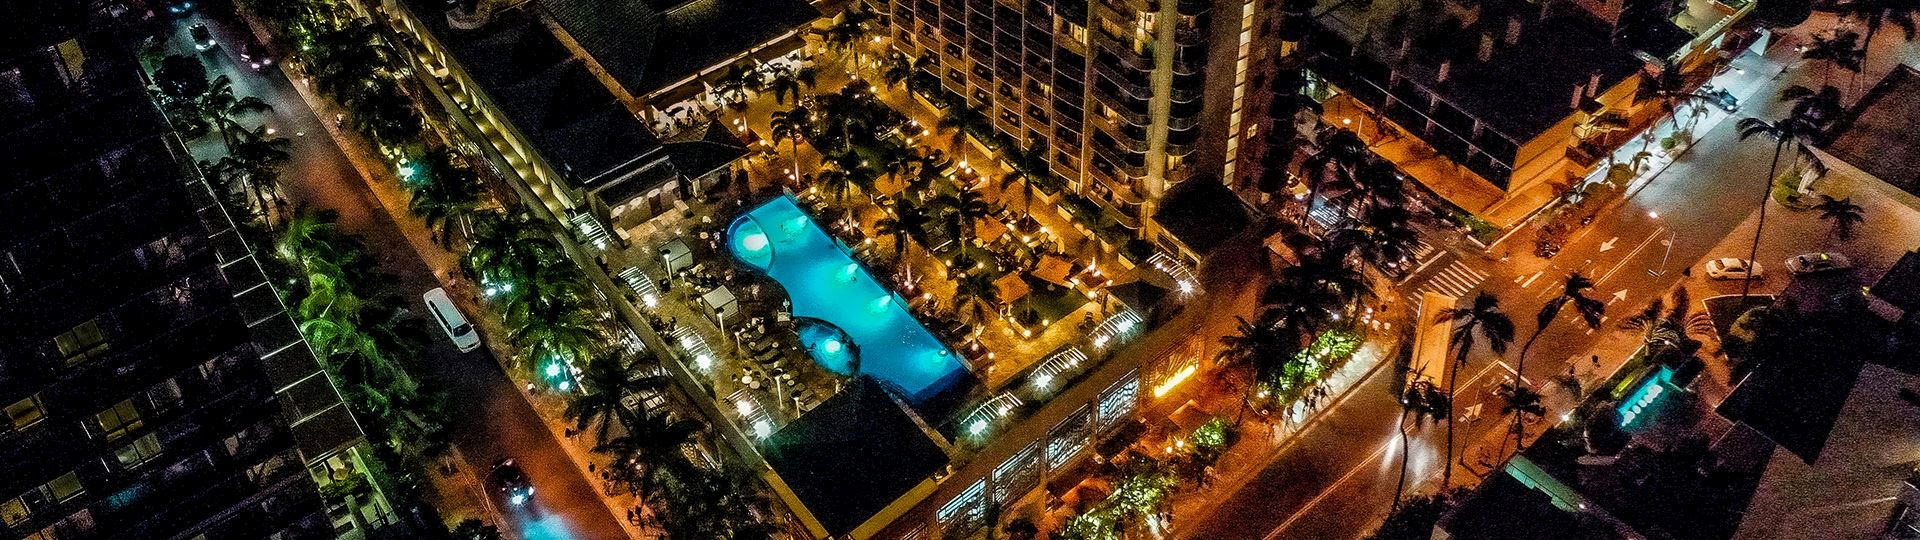 Sleep In Paradise At Our Waikiki All-suite Hotel